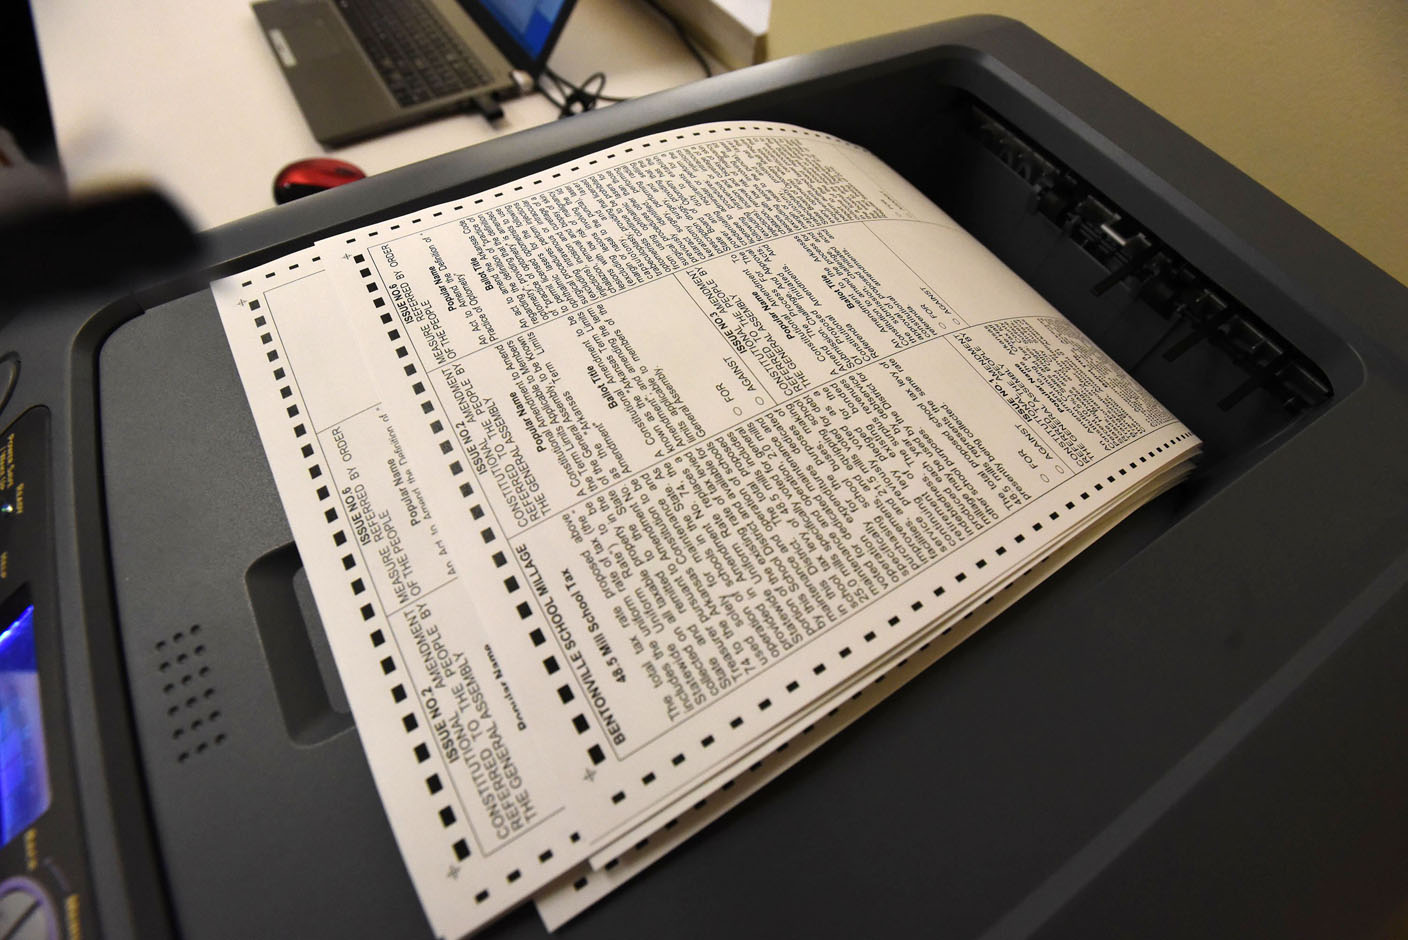 Voting tricky from abroad on state sites